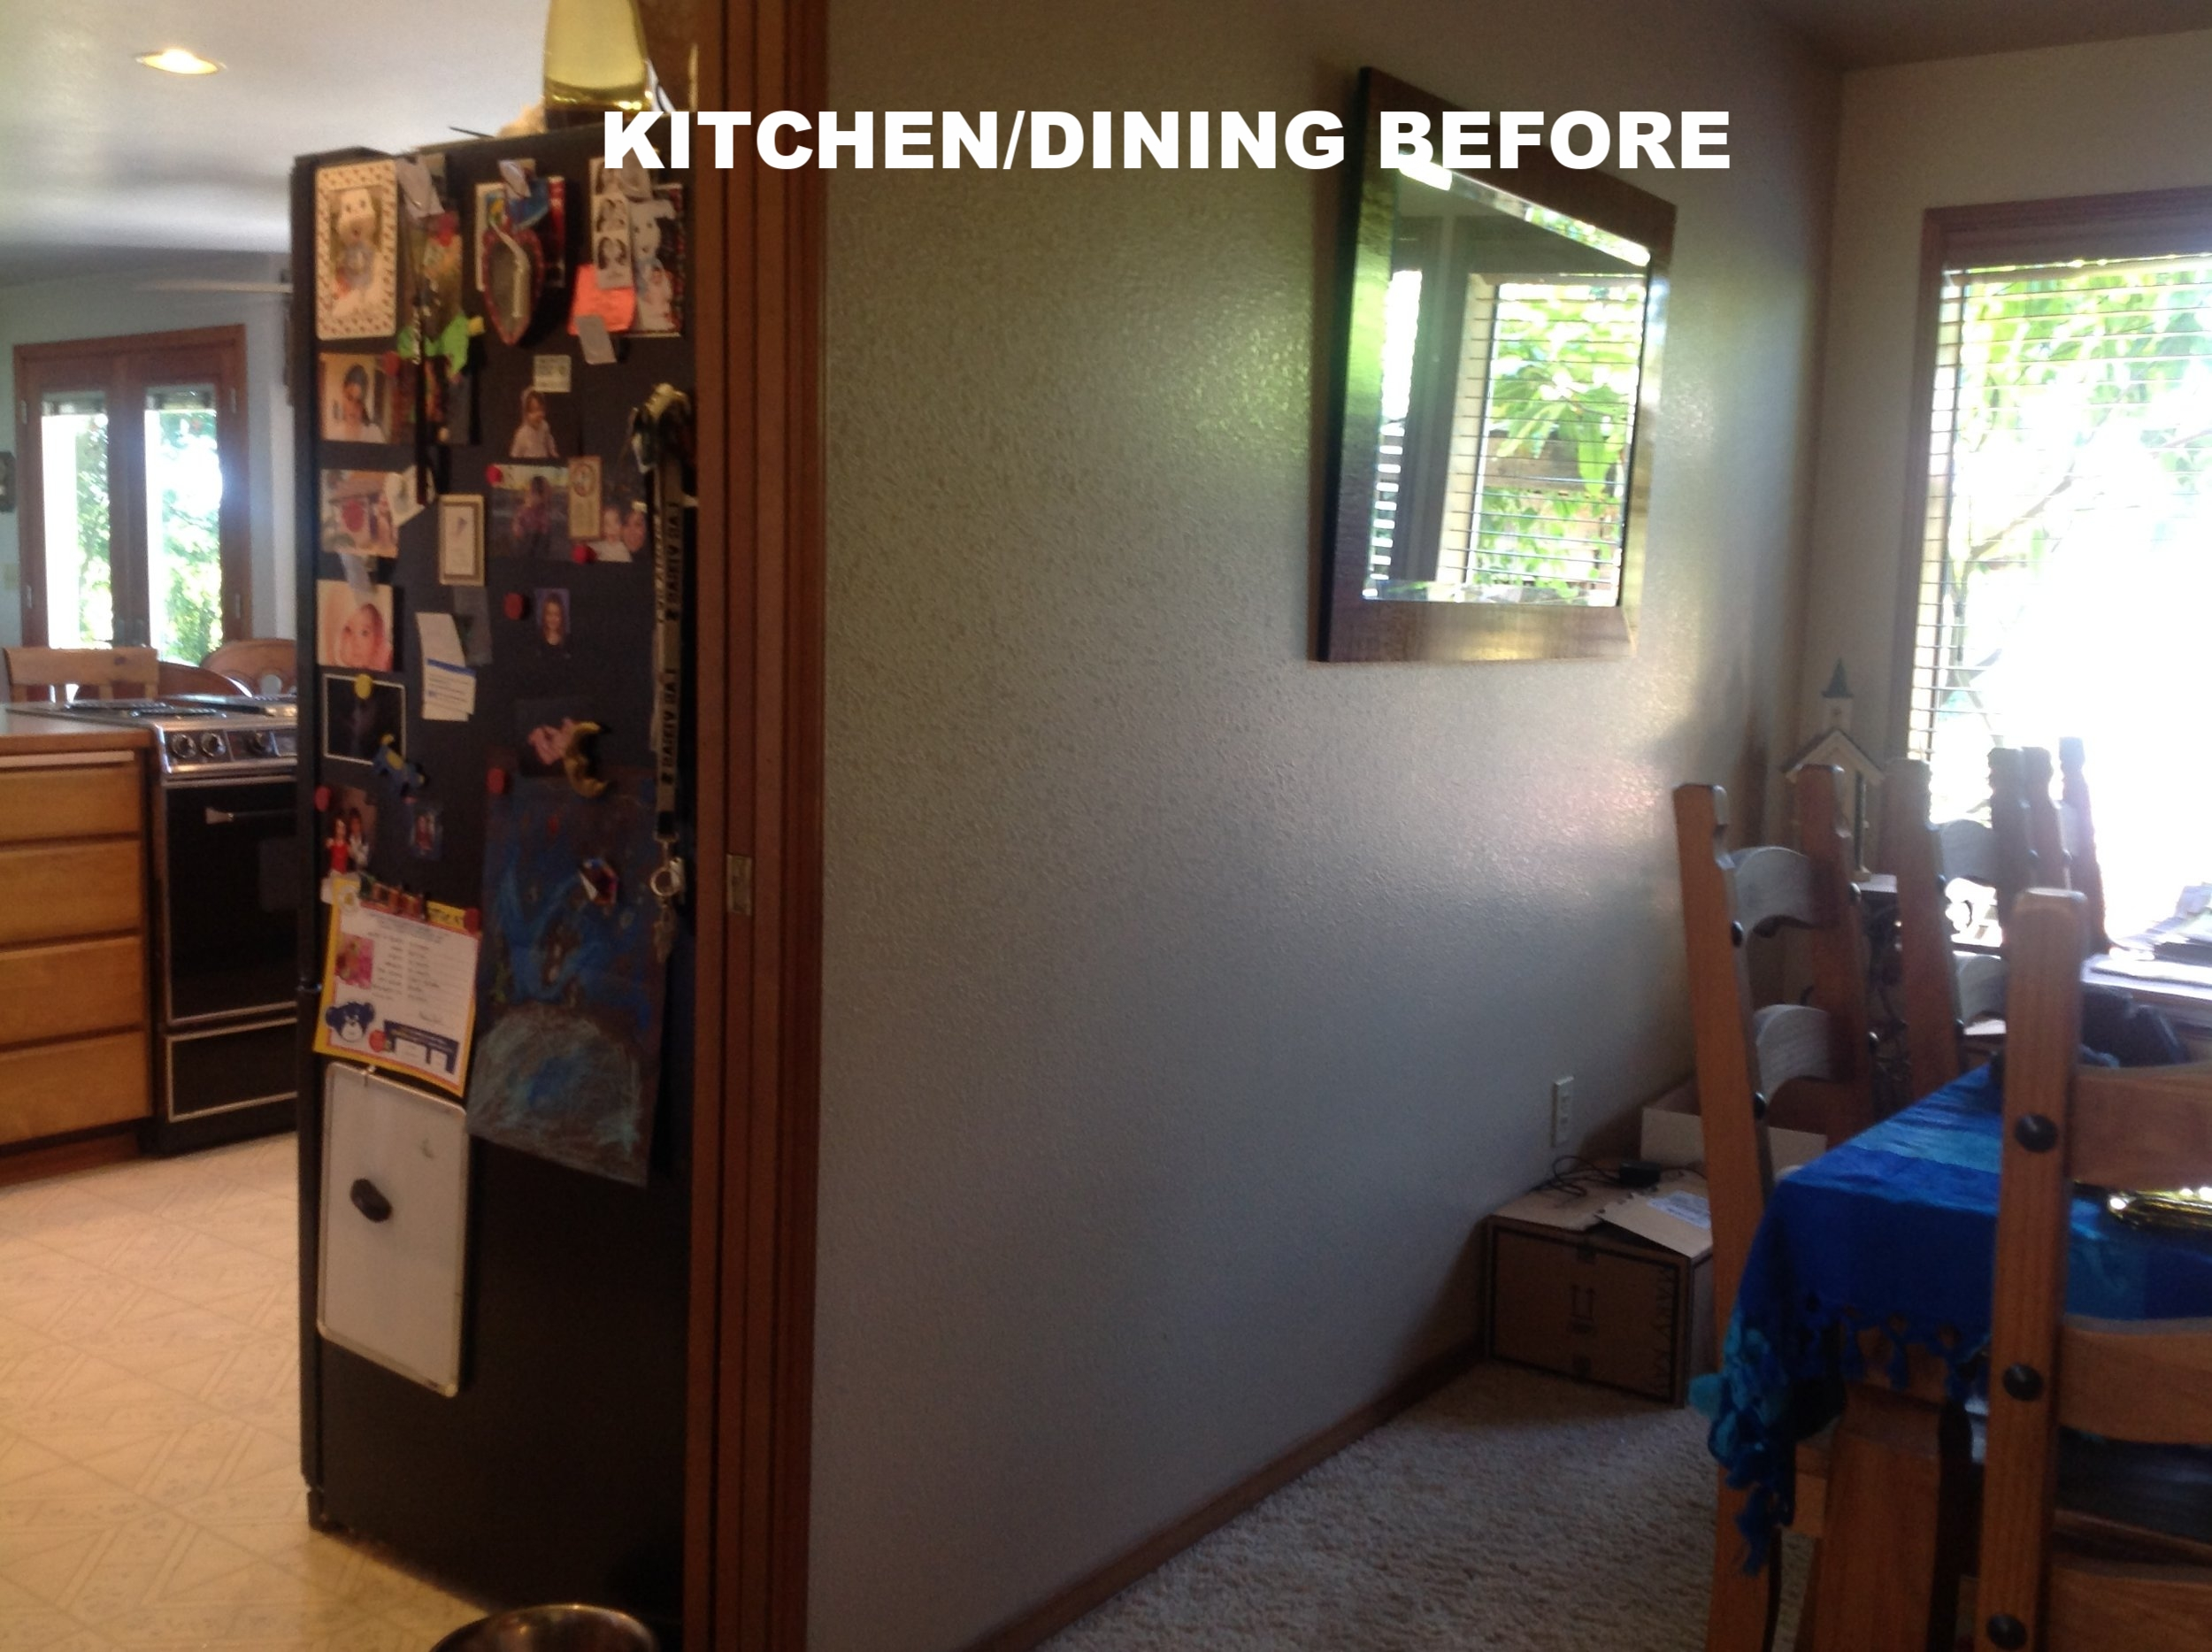 Initially, there was a formal dining room, in addition to the breakfast nook, which were nearly the same size. The formal dining room was an unnecessary waste of space.